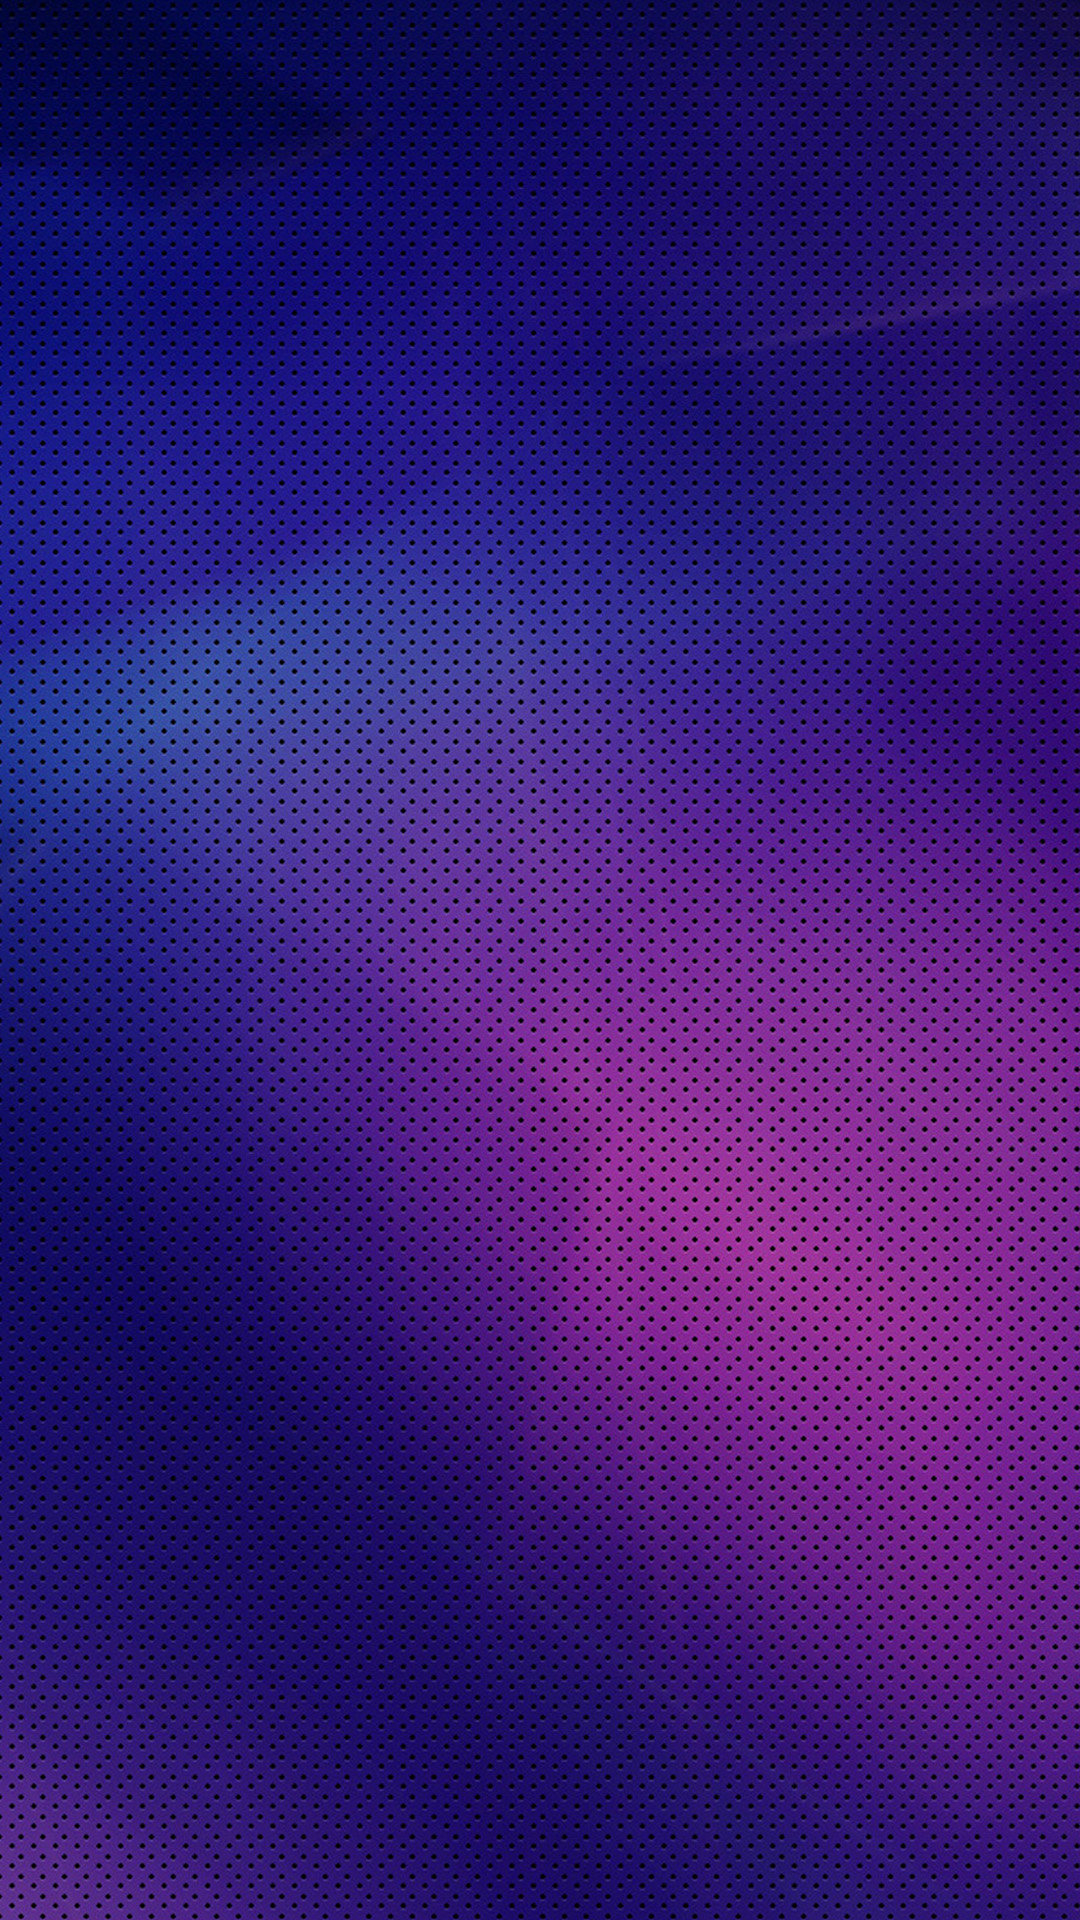 how to make mobile textures